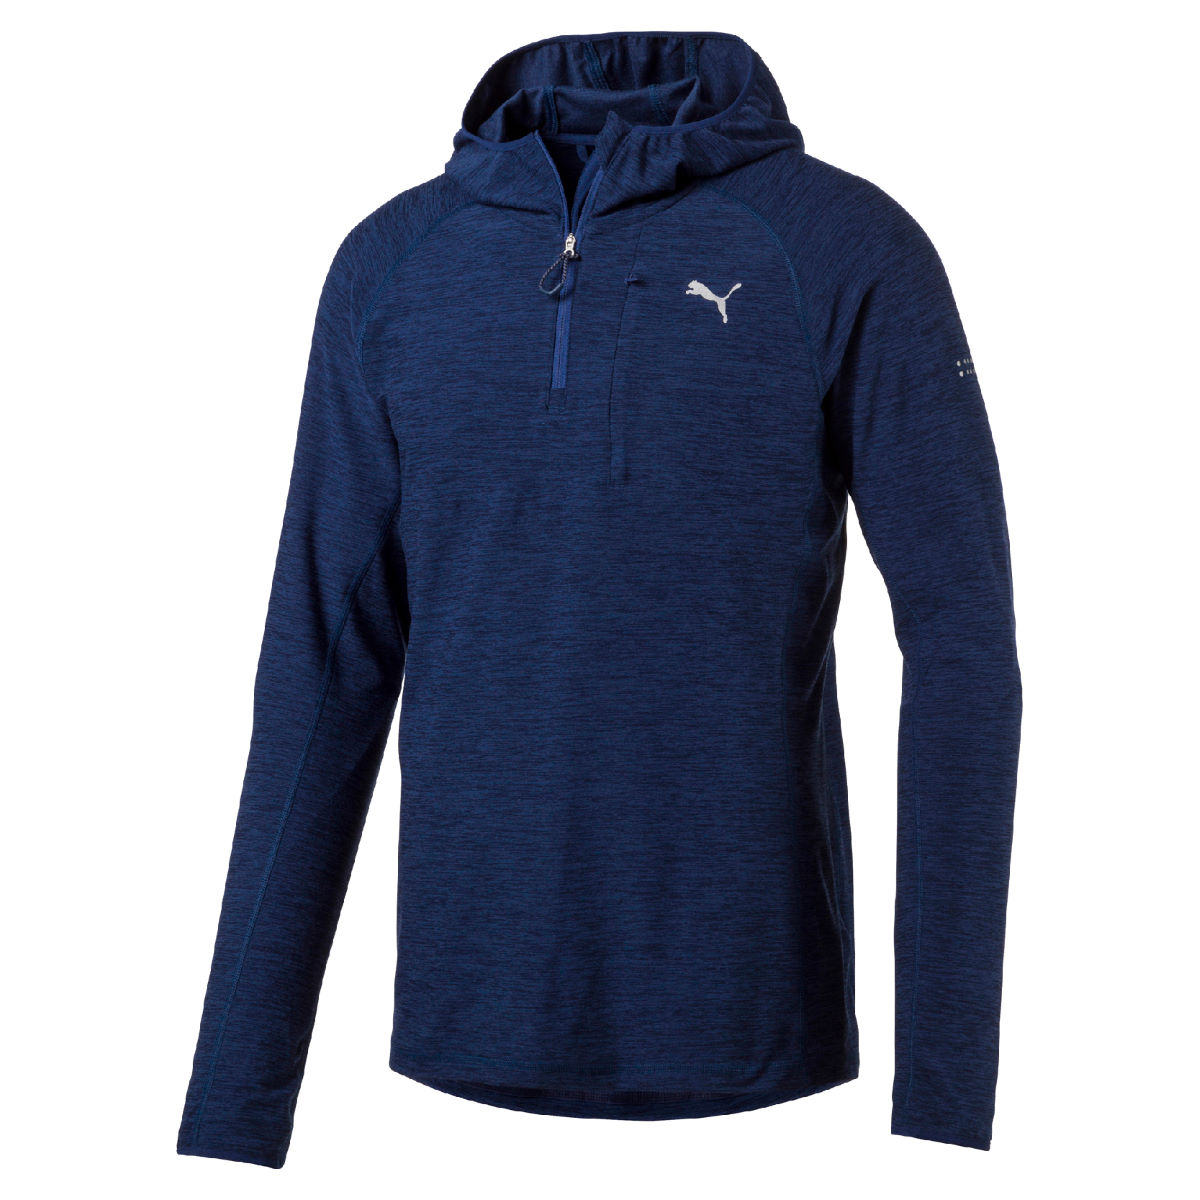 Maillot Puma Run (capuche, manches longues) - S Blue Depths Heather